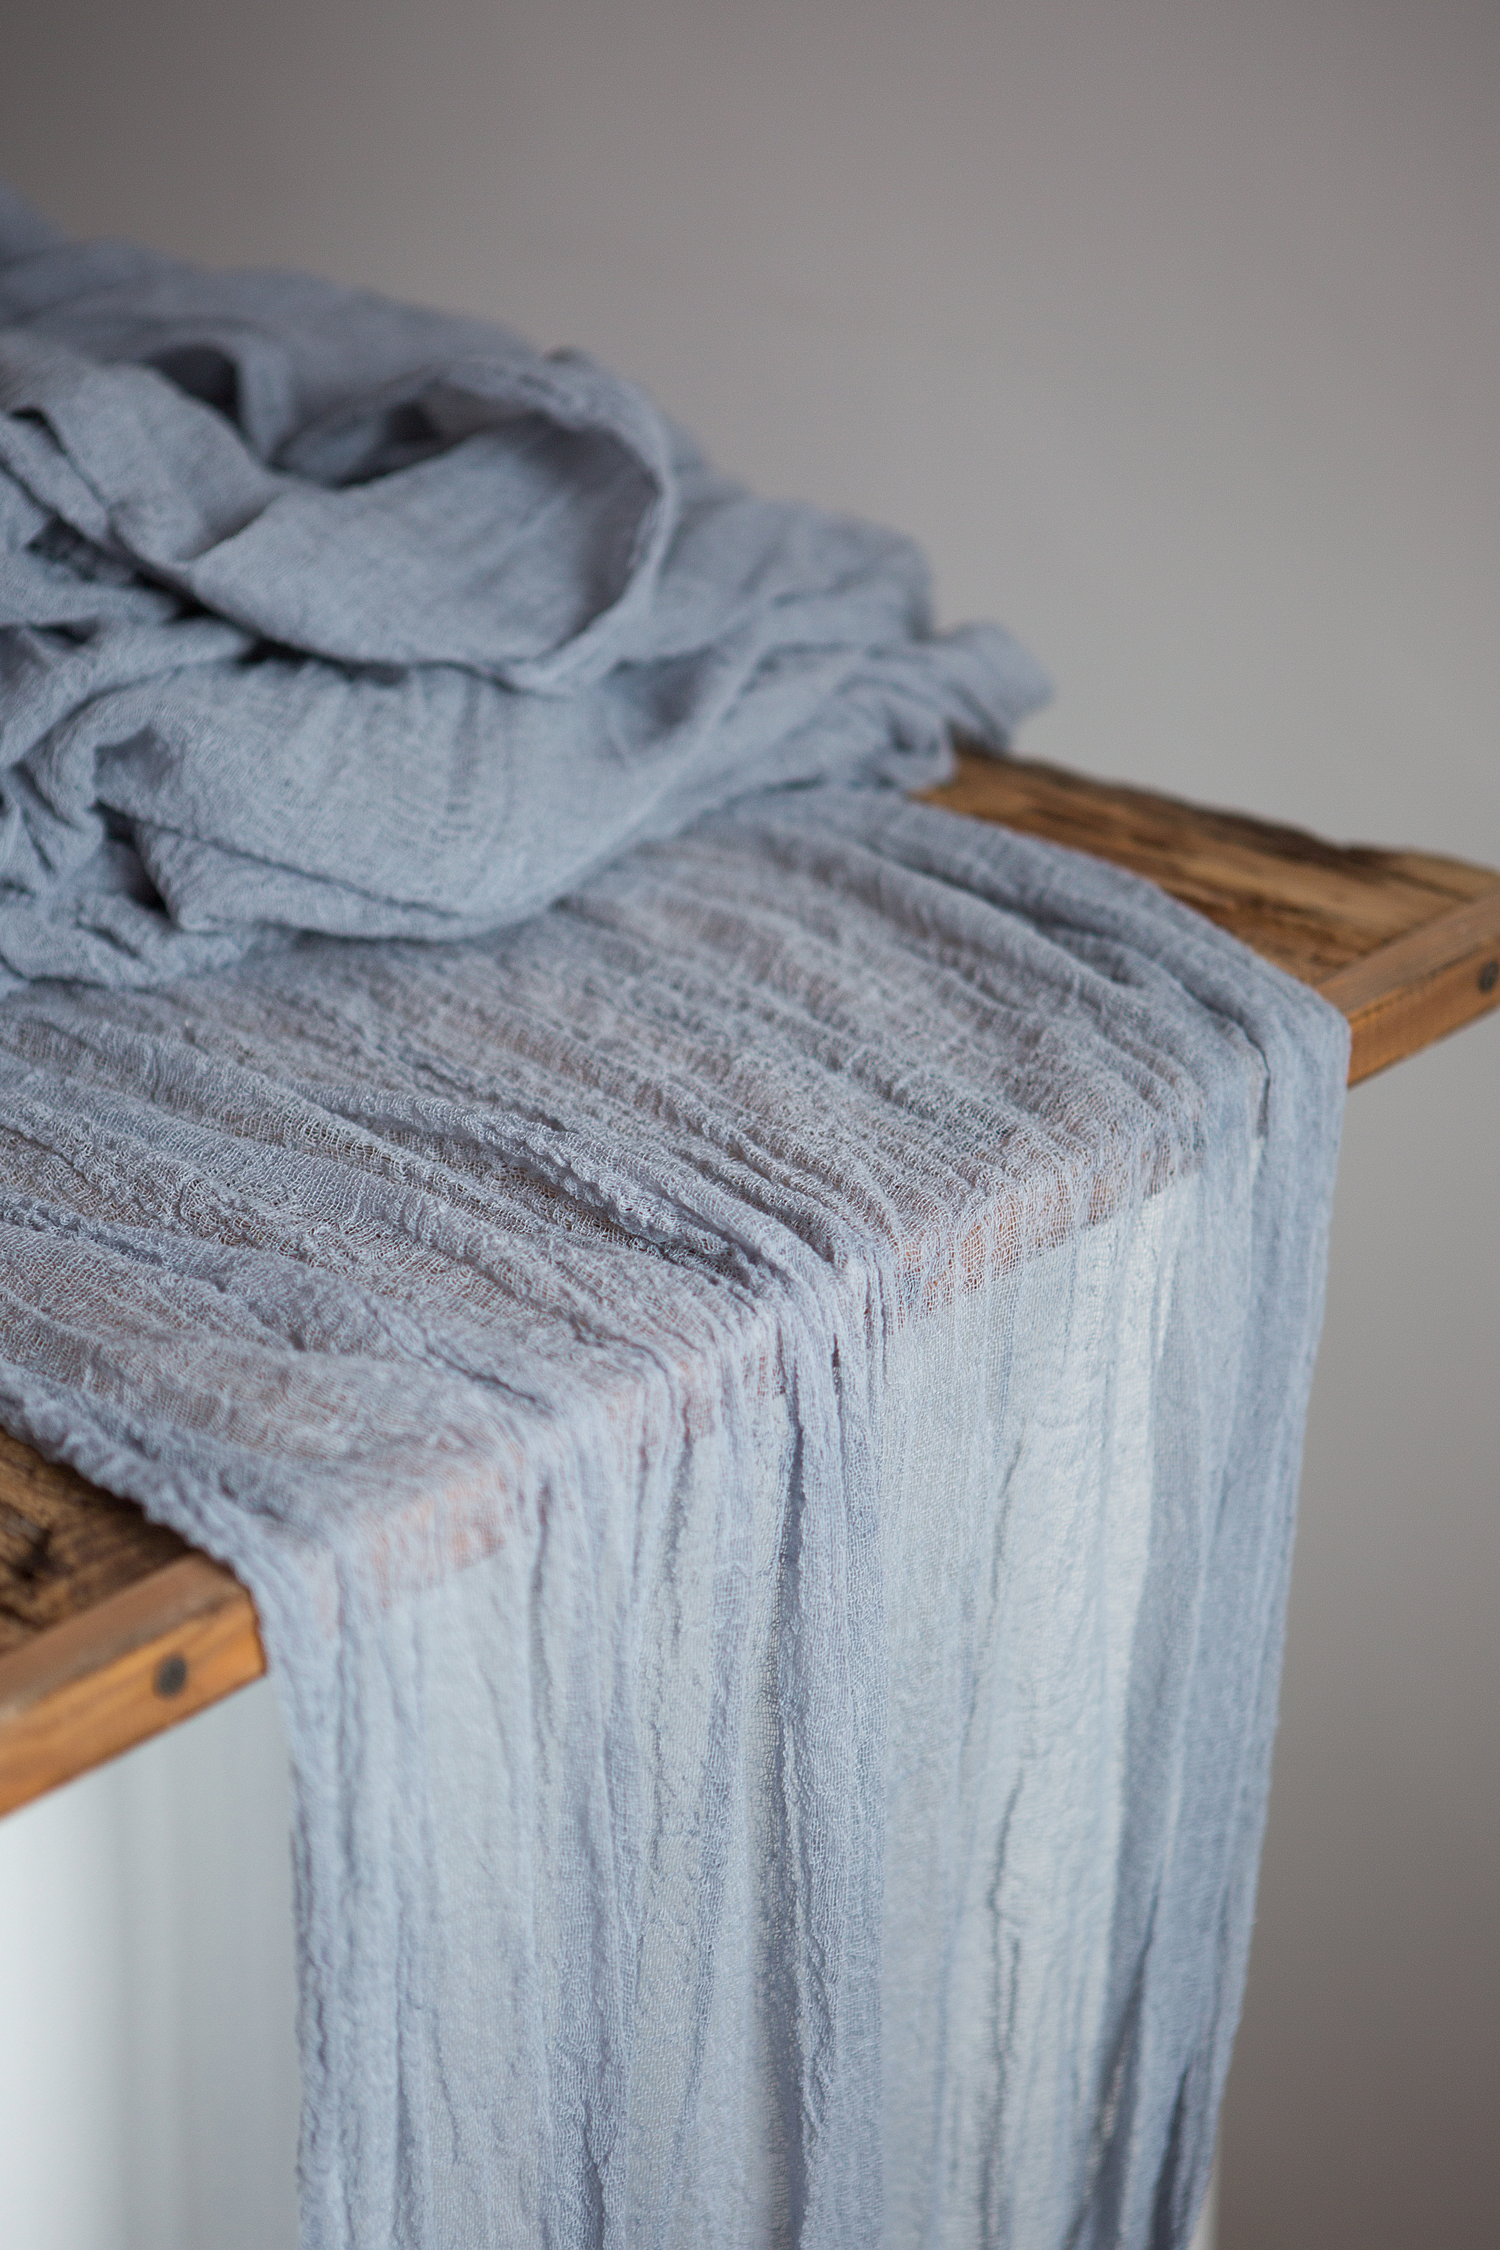 Dusty Blue Gauze Runner Centerpiece Cheesecloth Runner Rustic Etsy Wedding Sweetheart Table Decor Sweetheart Table Decor Rustic Wedding Decor